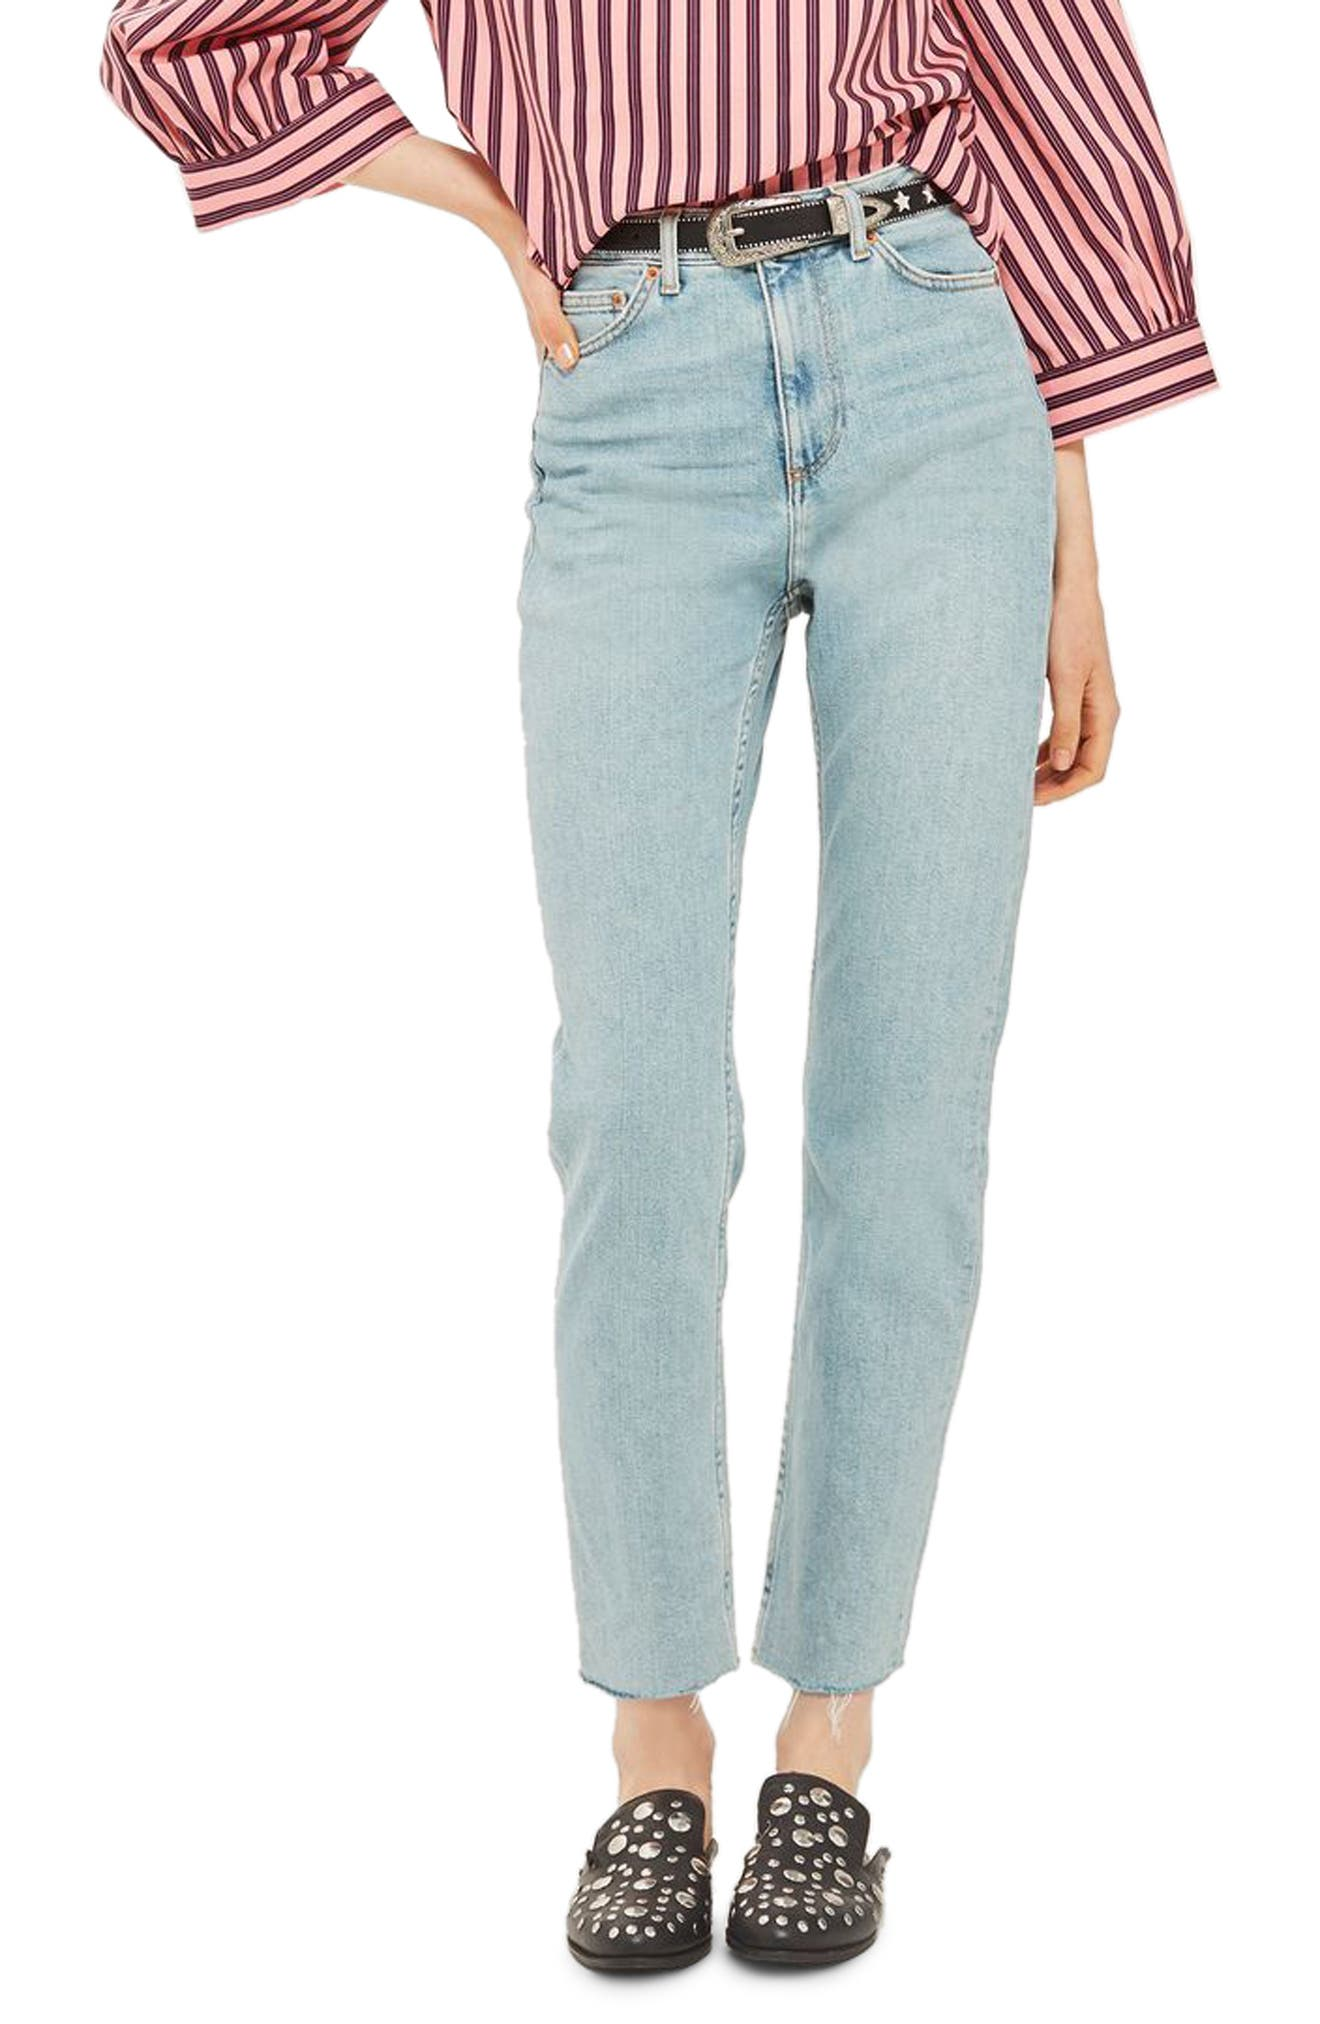 Alternate Image 1 Selected - Topshop Vintage Bleach Raw Hem Straight Leg Jeans